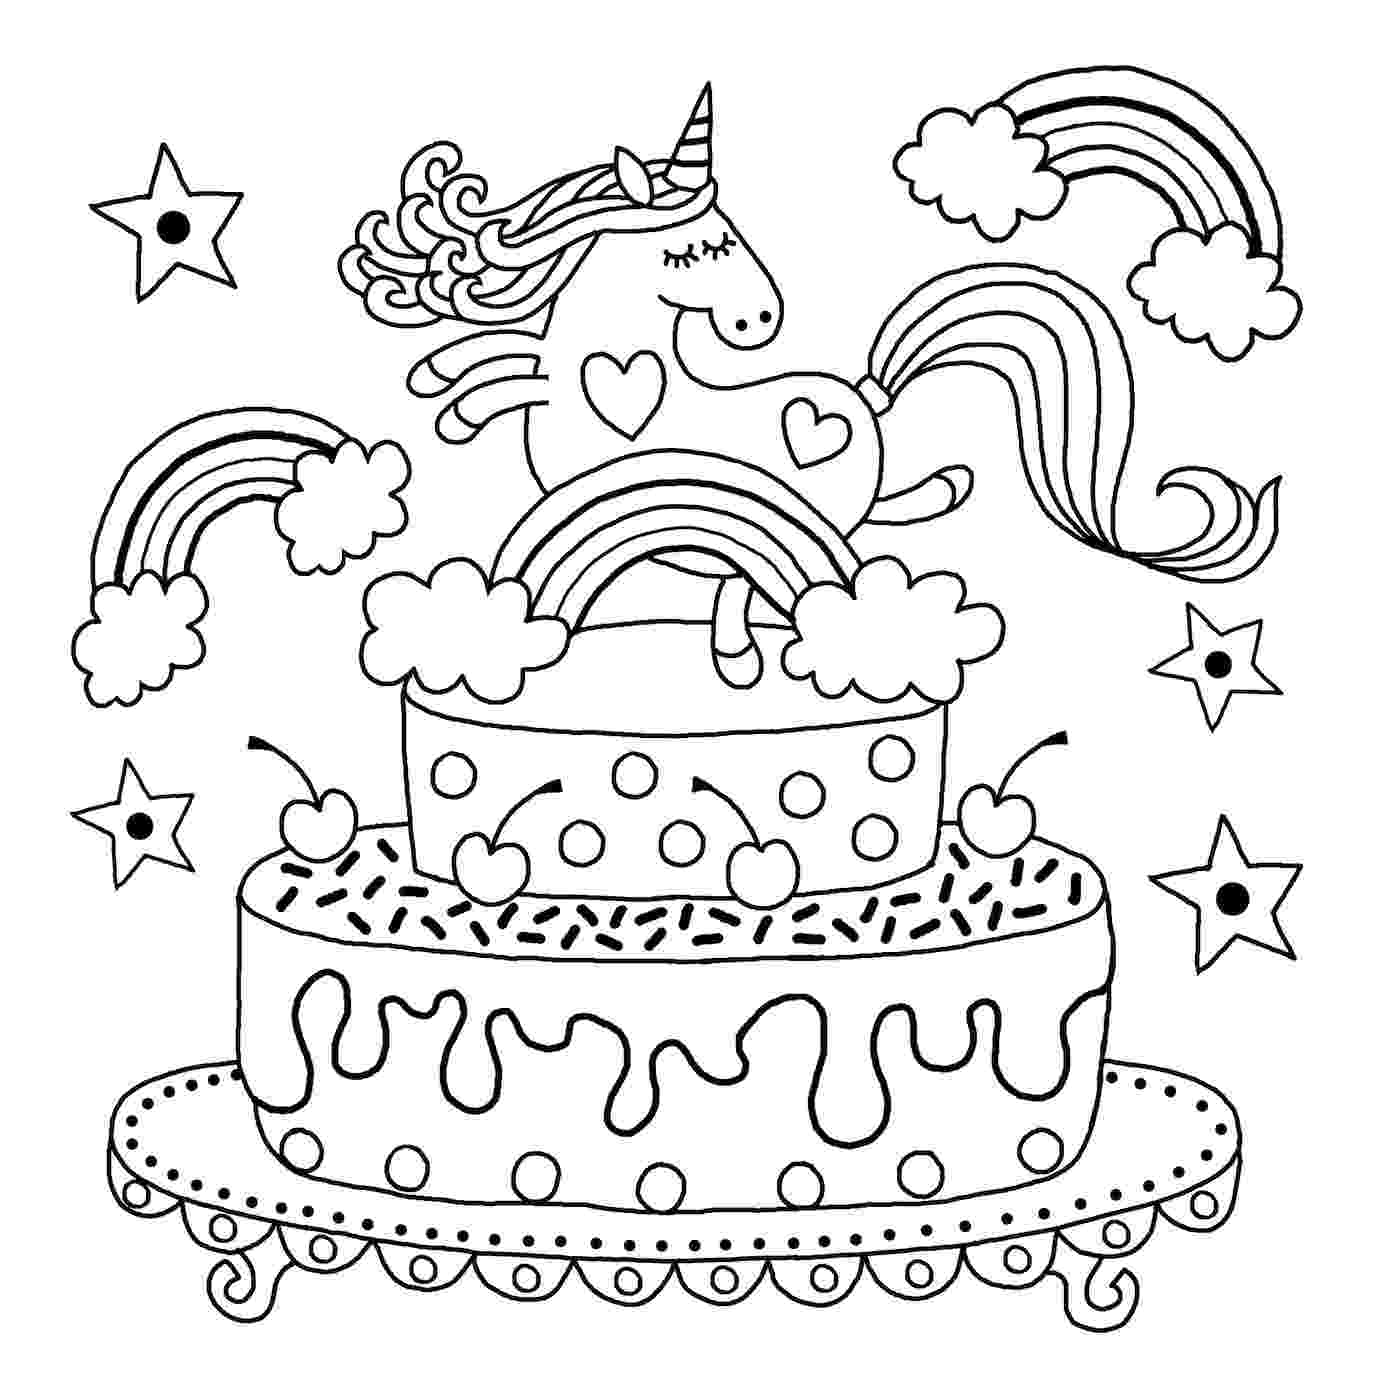 printable unicorn coloring book unicorn coloring pages to download and print for free coloring printable unicorn book